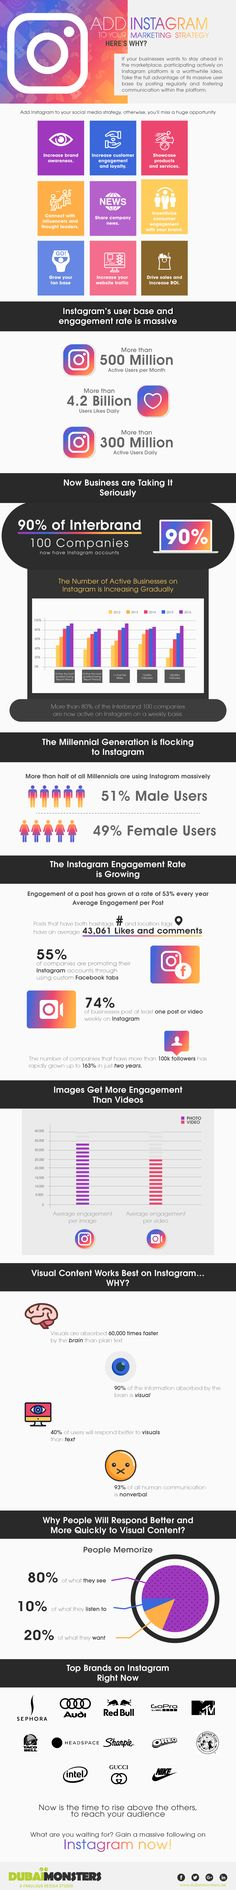 Add Instagram to Your Marketing Strategy, Here's Why? #Infographic #Instagram #Marketing